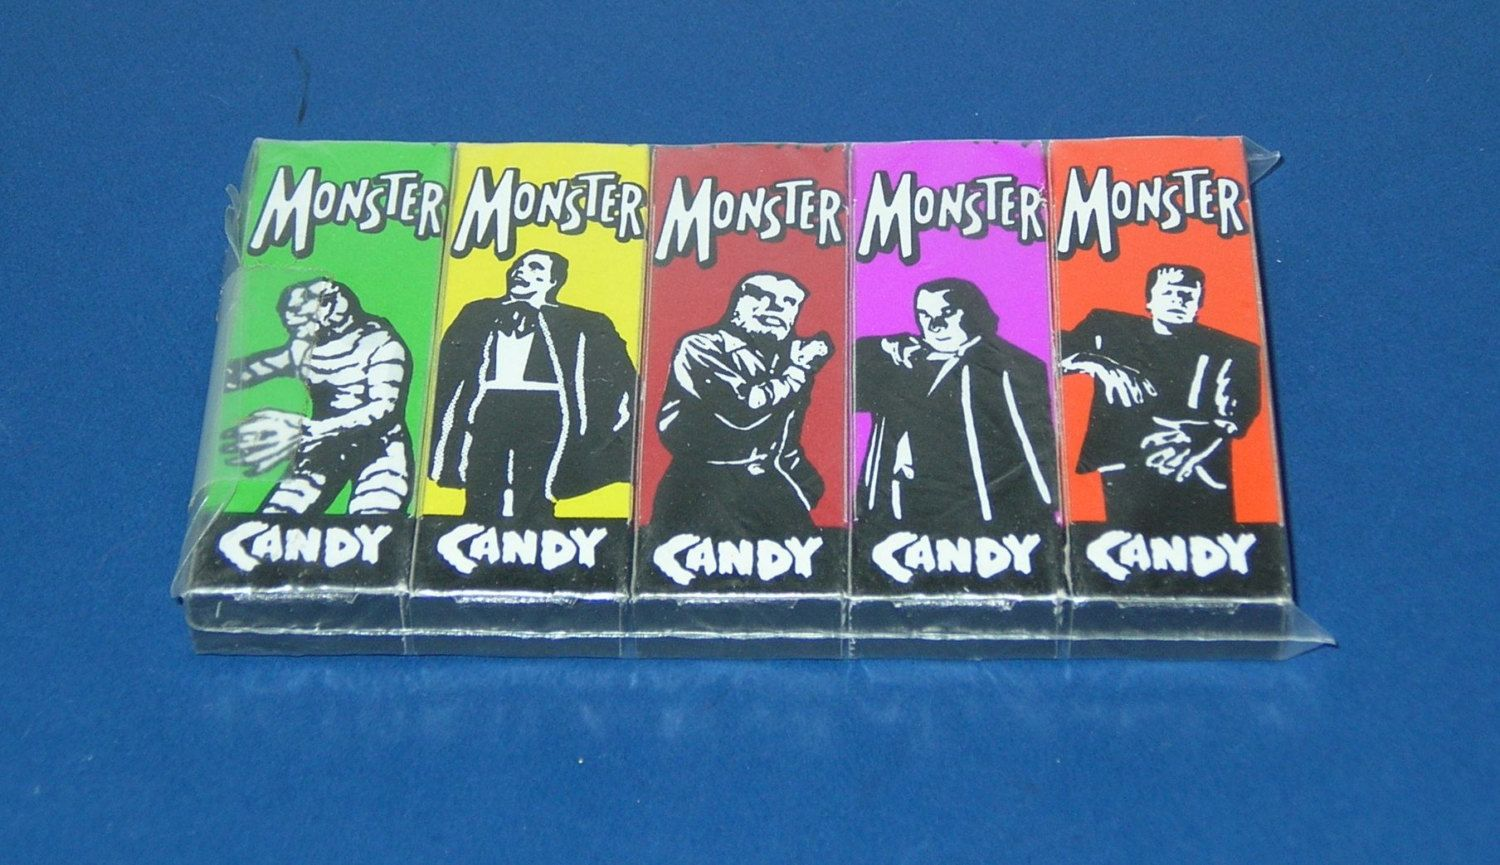 Vintage 1980s Halloween Monster Candy Box Set by